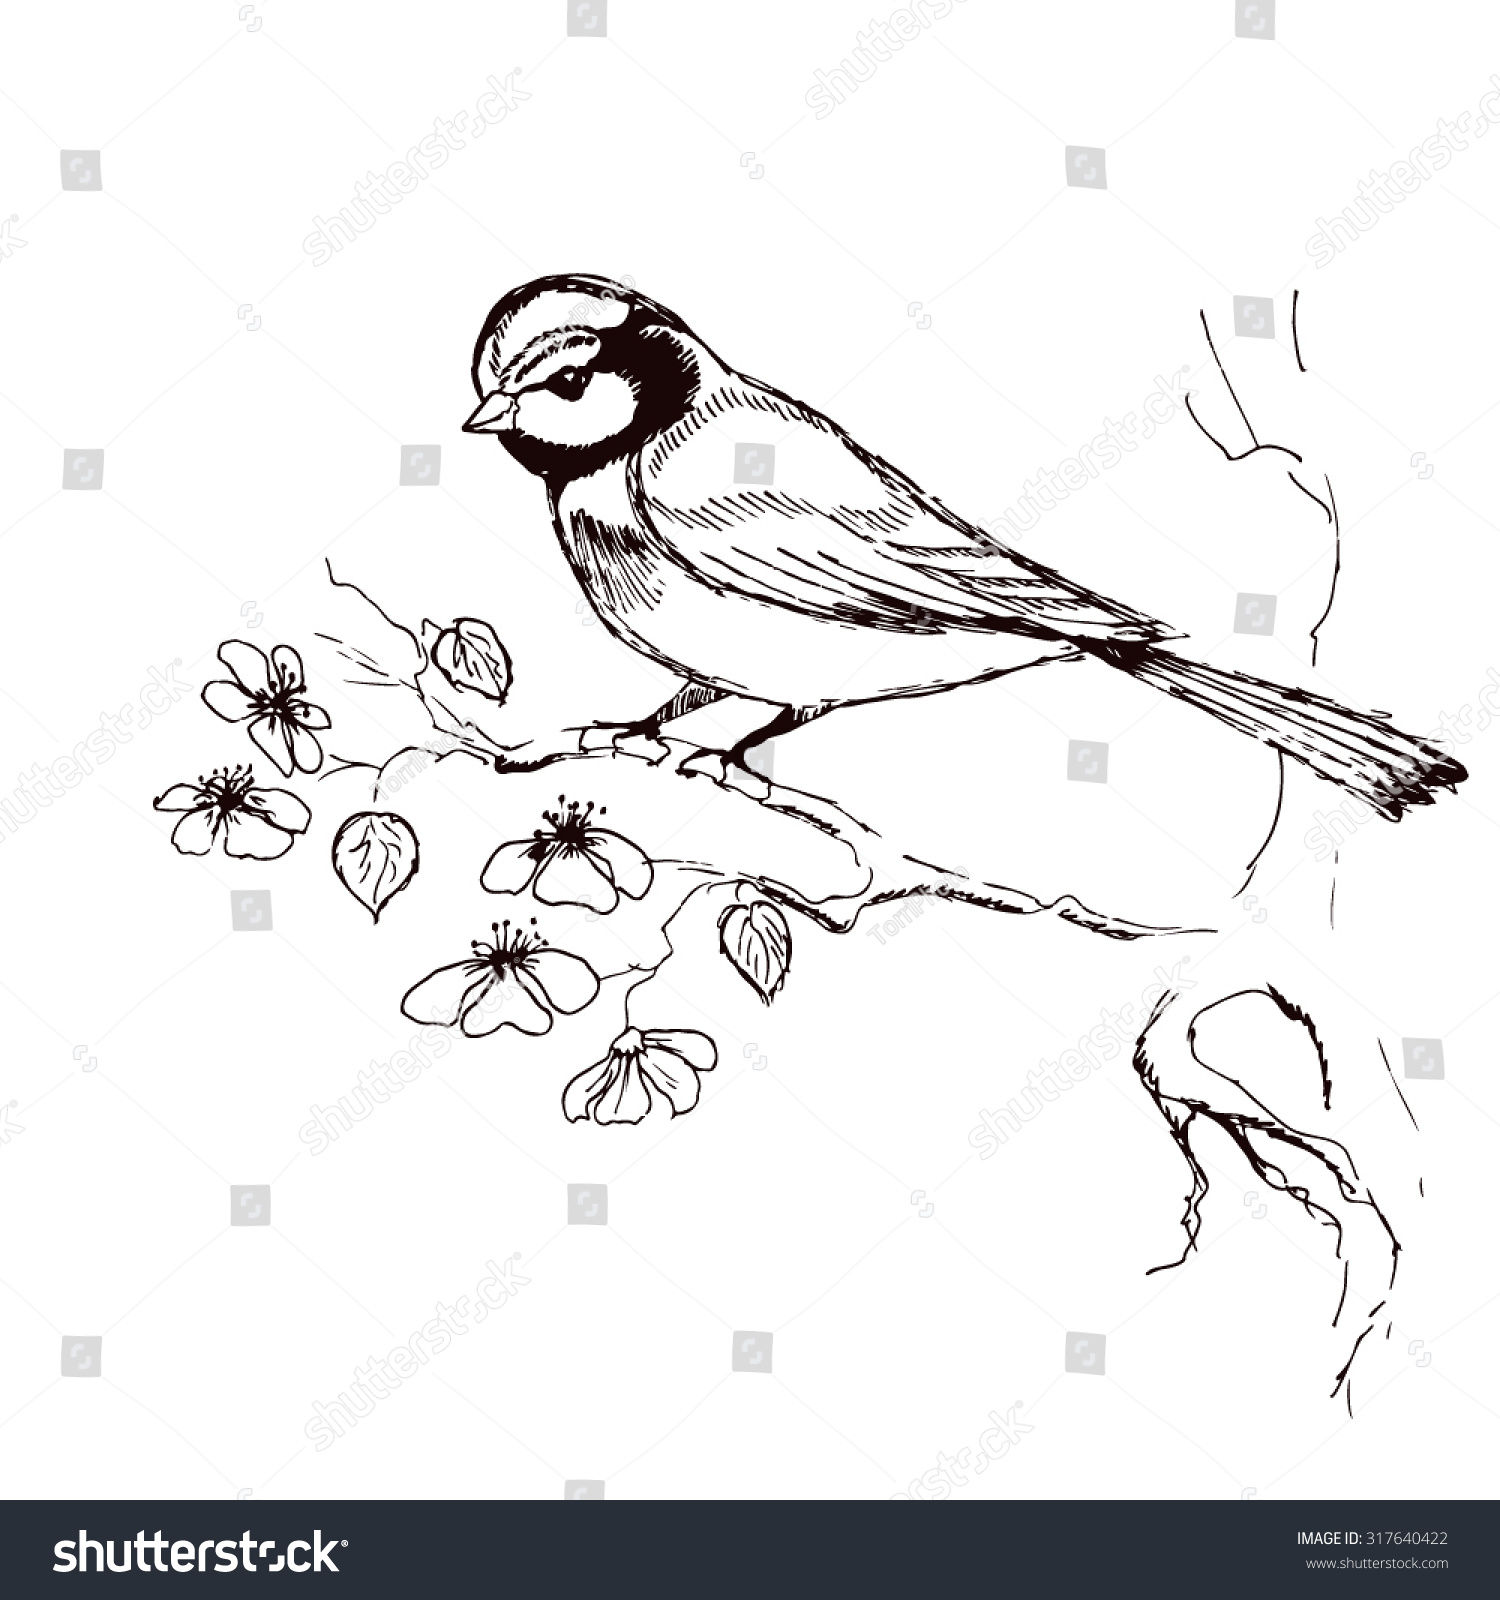 Sketch Titmouse Bird Sitting On Flowering Stock Vector 317640422 - Shutterstock